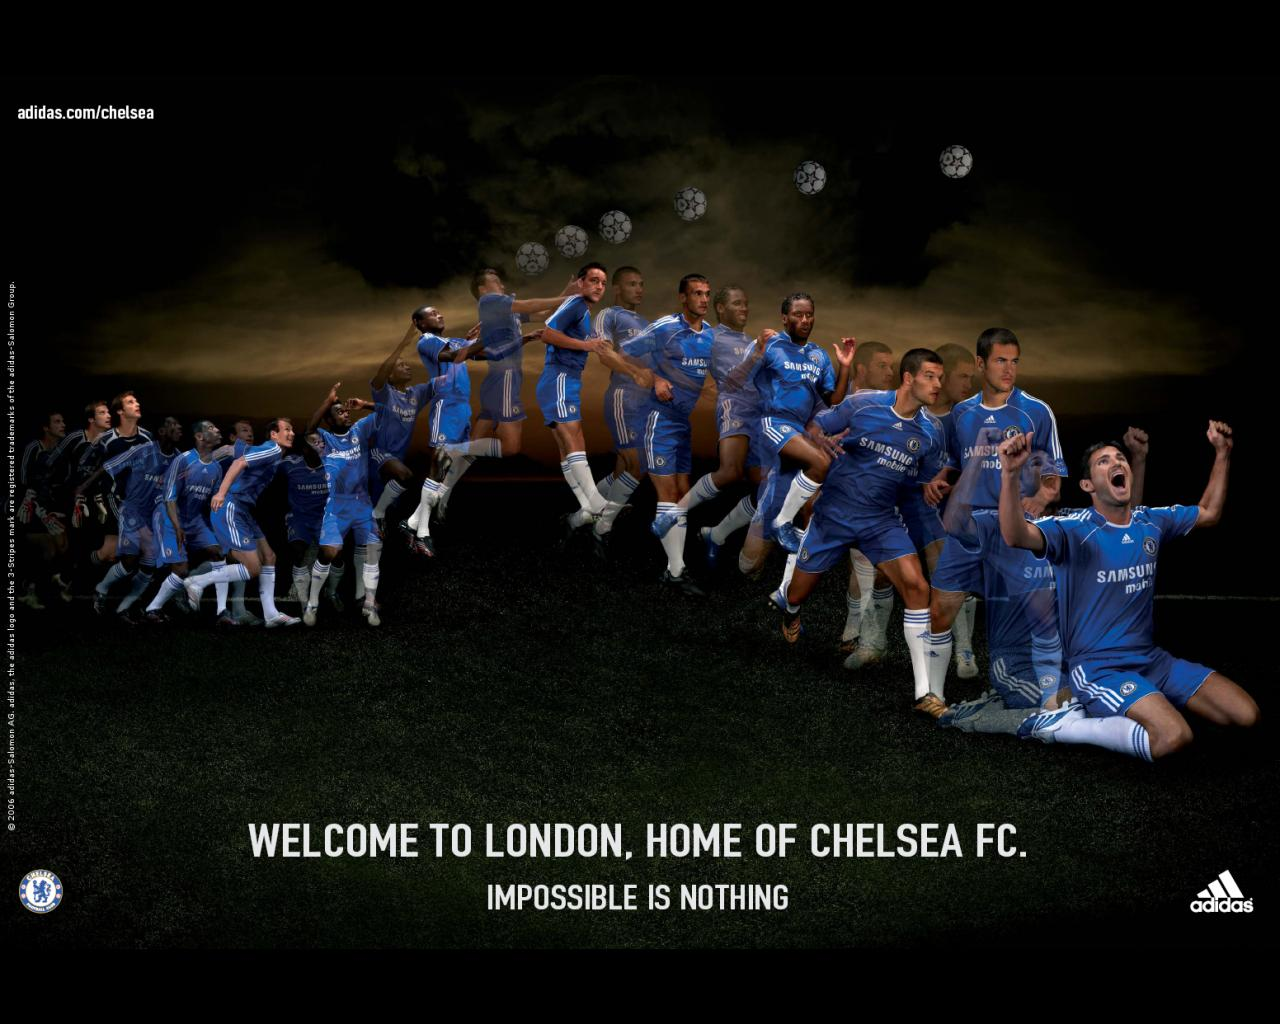 Chelsea Fc Desktop Wallpaper 1280x1024